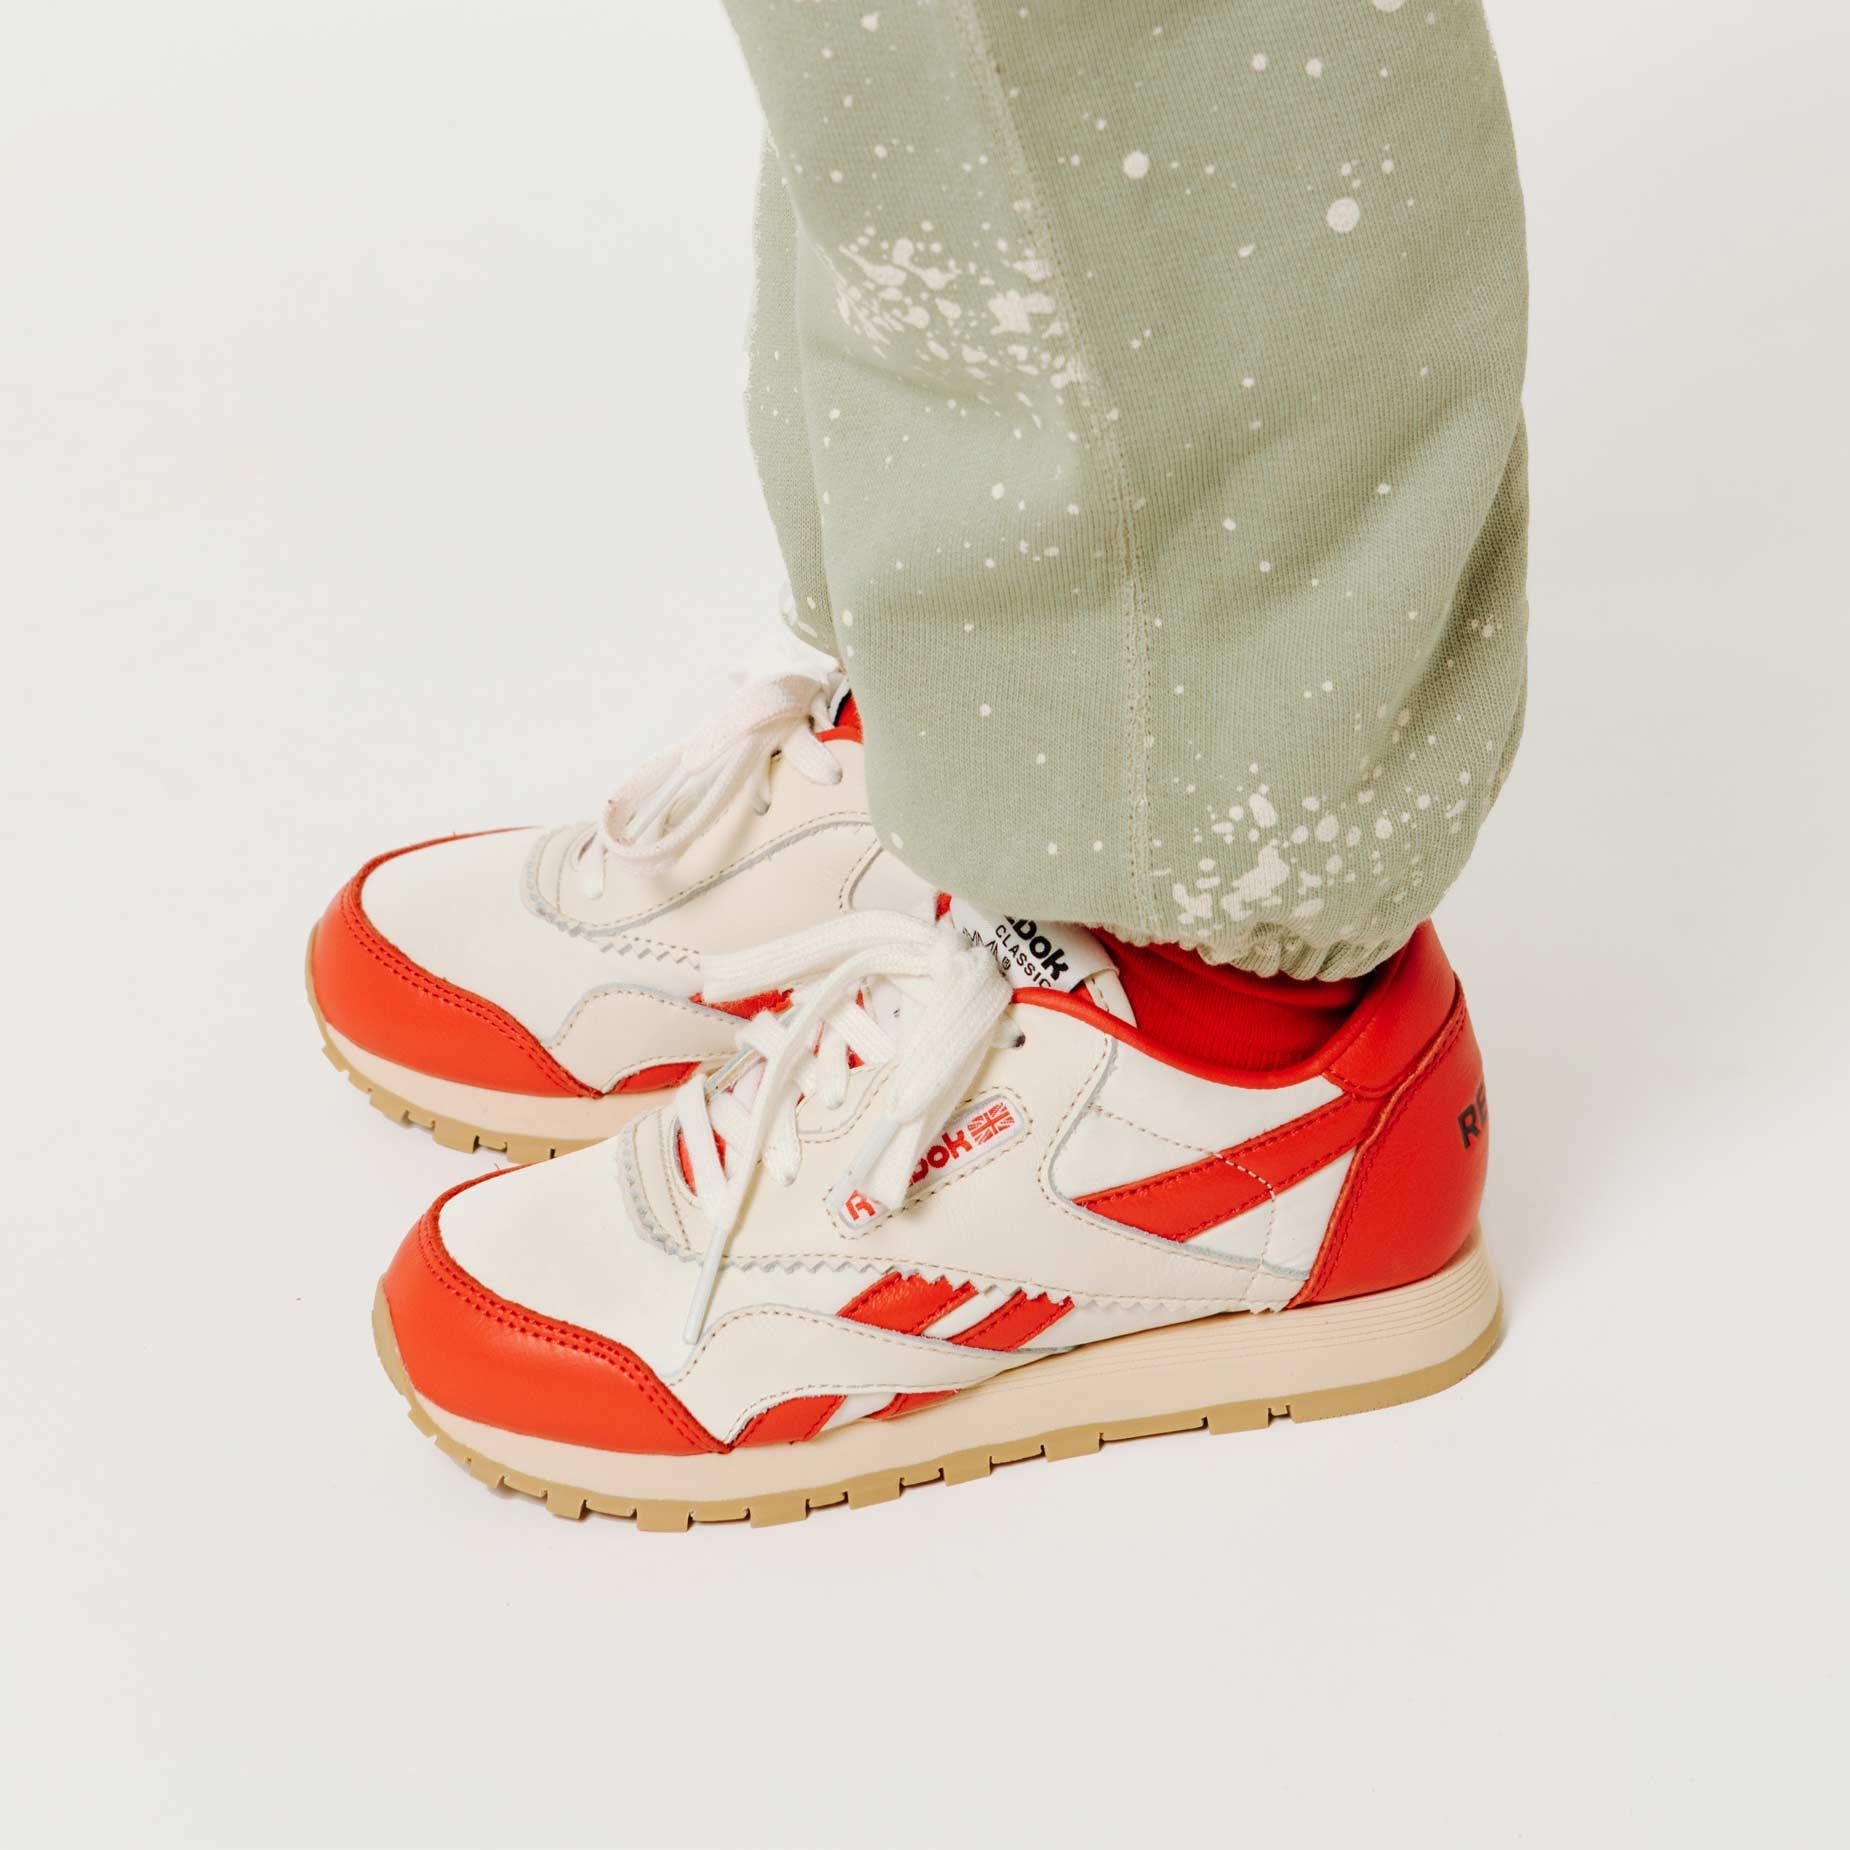 Reebok x The Animals Observatory Classic Nylon Red Kid img-6